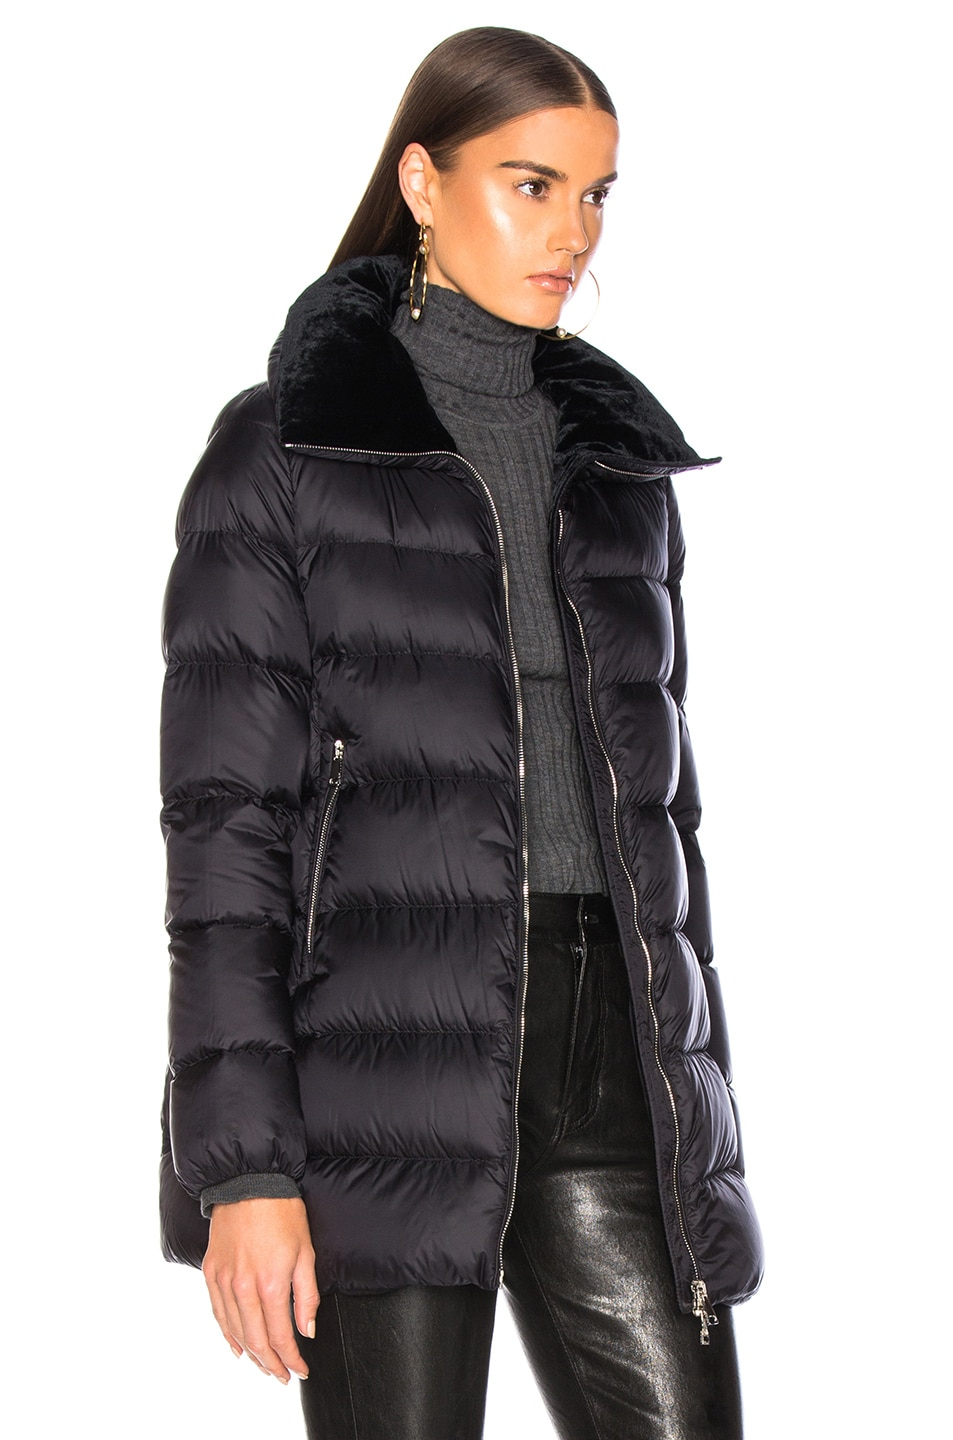 Image 3 of Moncler Torcol Giubbotto Jacket in Black